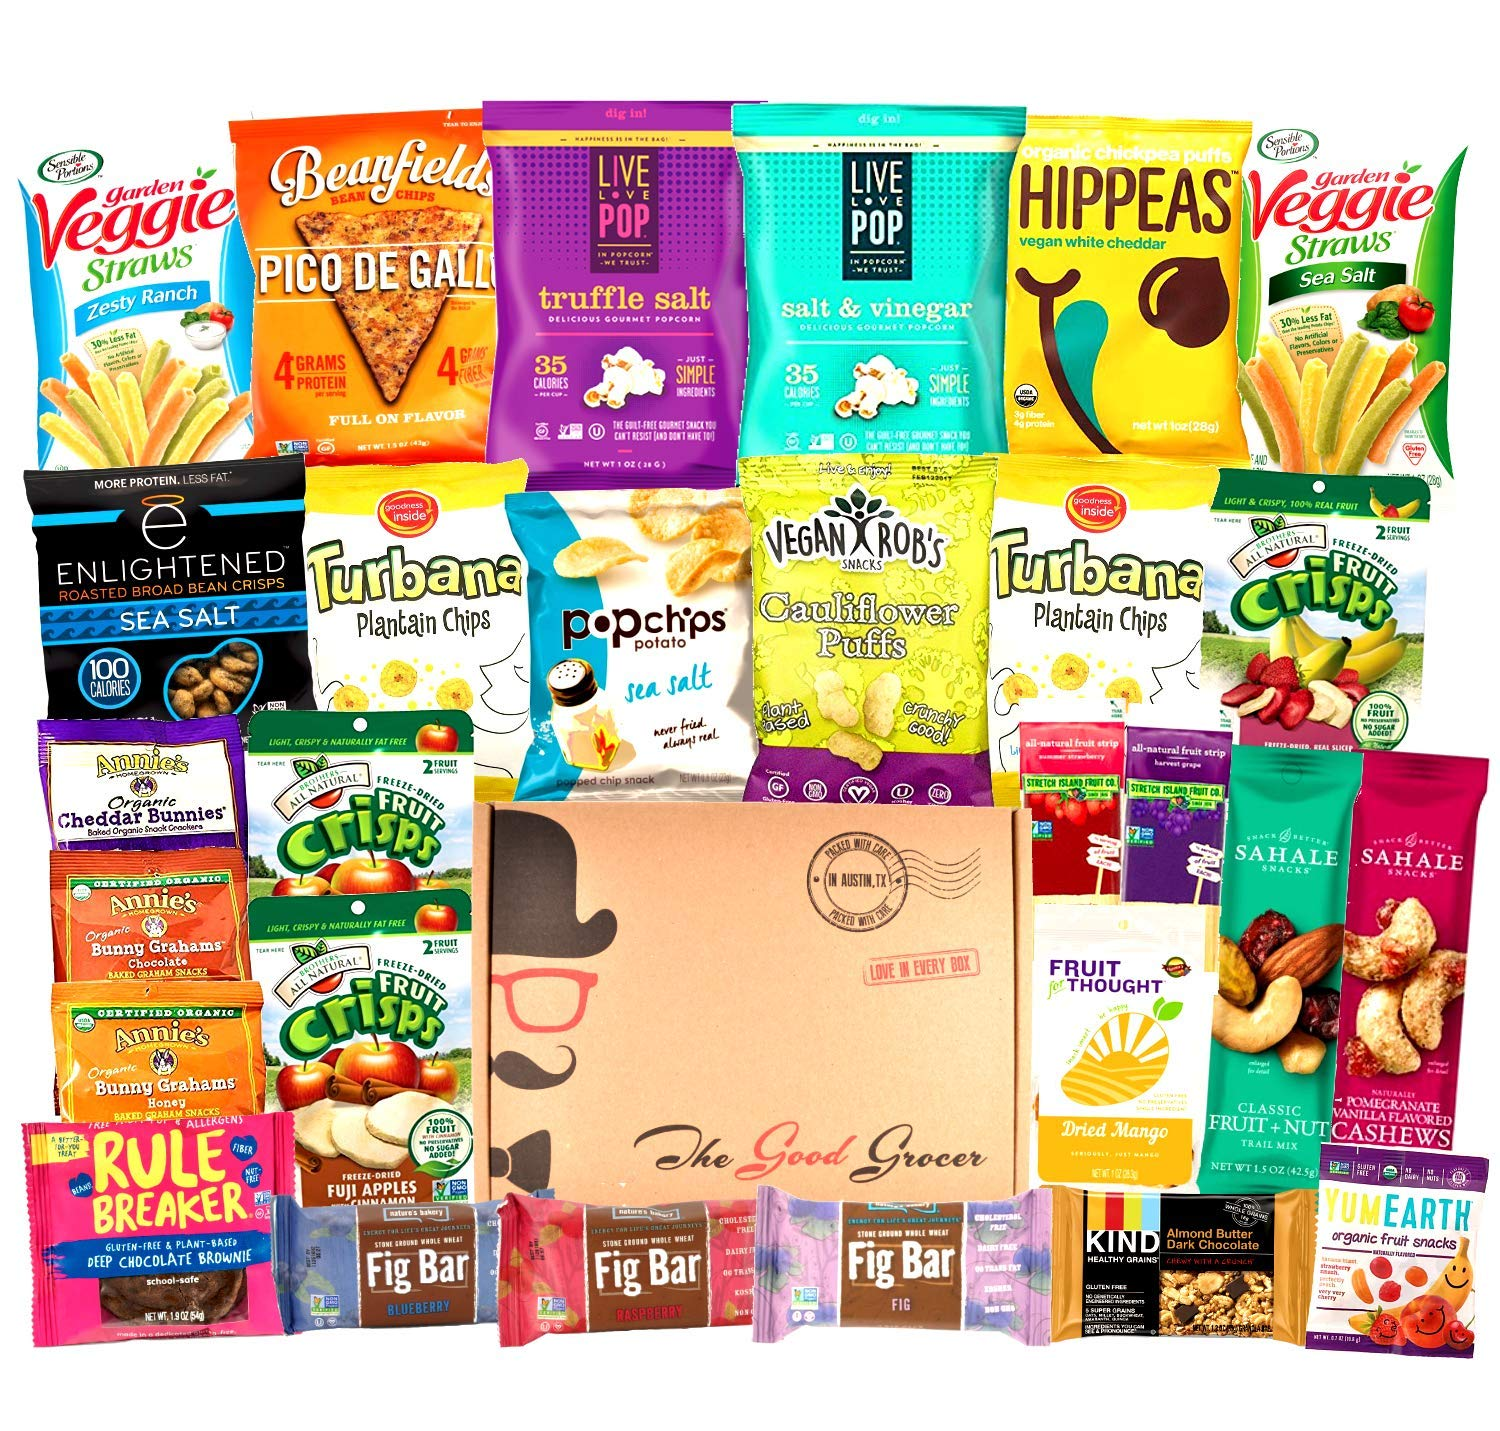 NON-GMO HEALTHY SNACKS Care Package (28 Ct): Snack Bars, Vegan Puffs, Popcorn, Fruit Snacks, Freeze Dried Fruit, Gift Box Variety Pack, College Student Military Care Package, Office Client Gift Basket by The Good Grocer